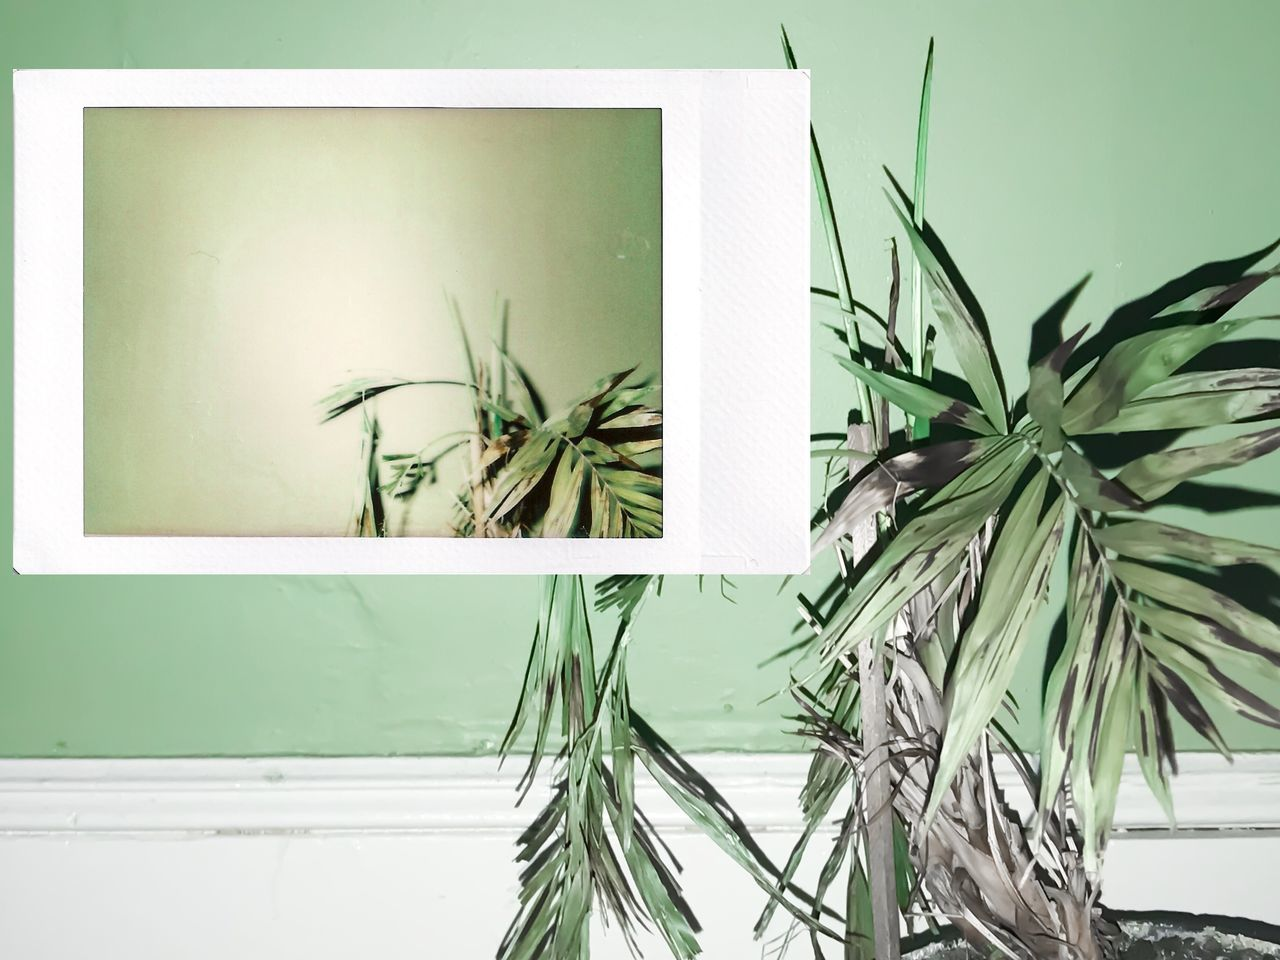 Close-up Day Green Color Growth Indoors  Instant Photo A Day Leaf Nature No People Plant